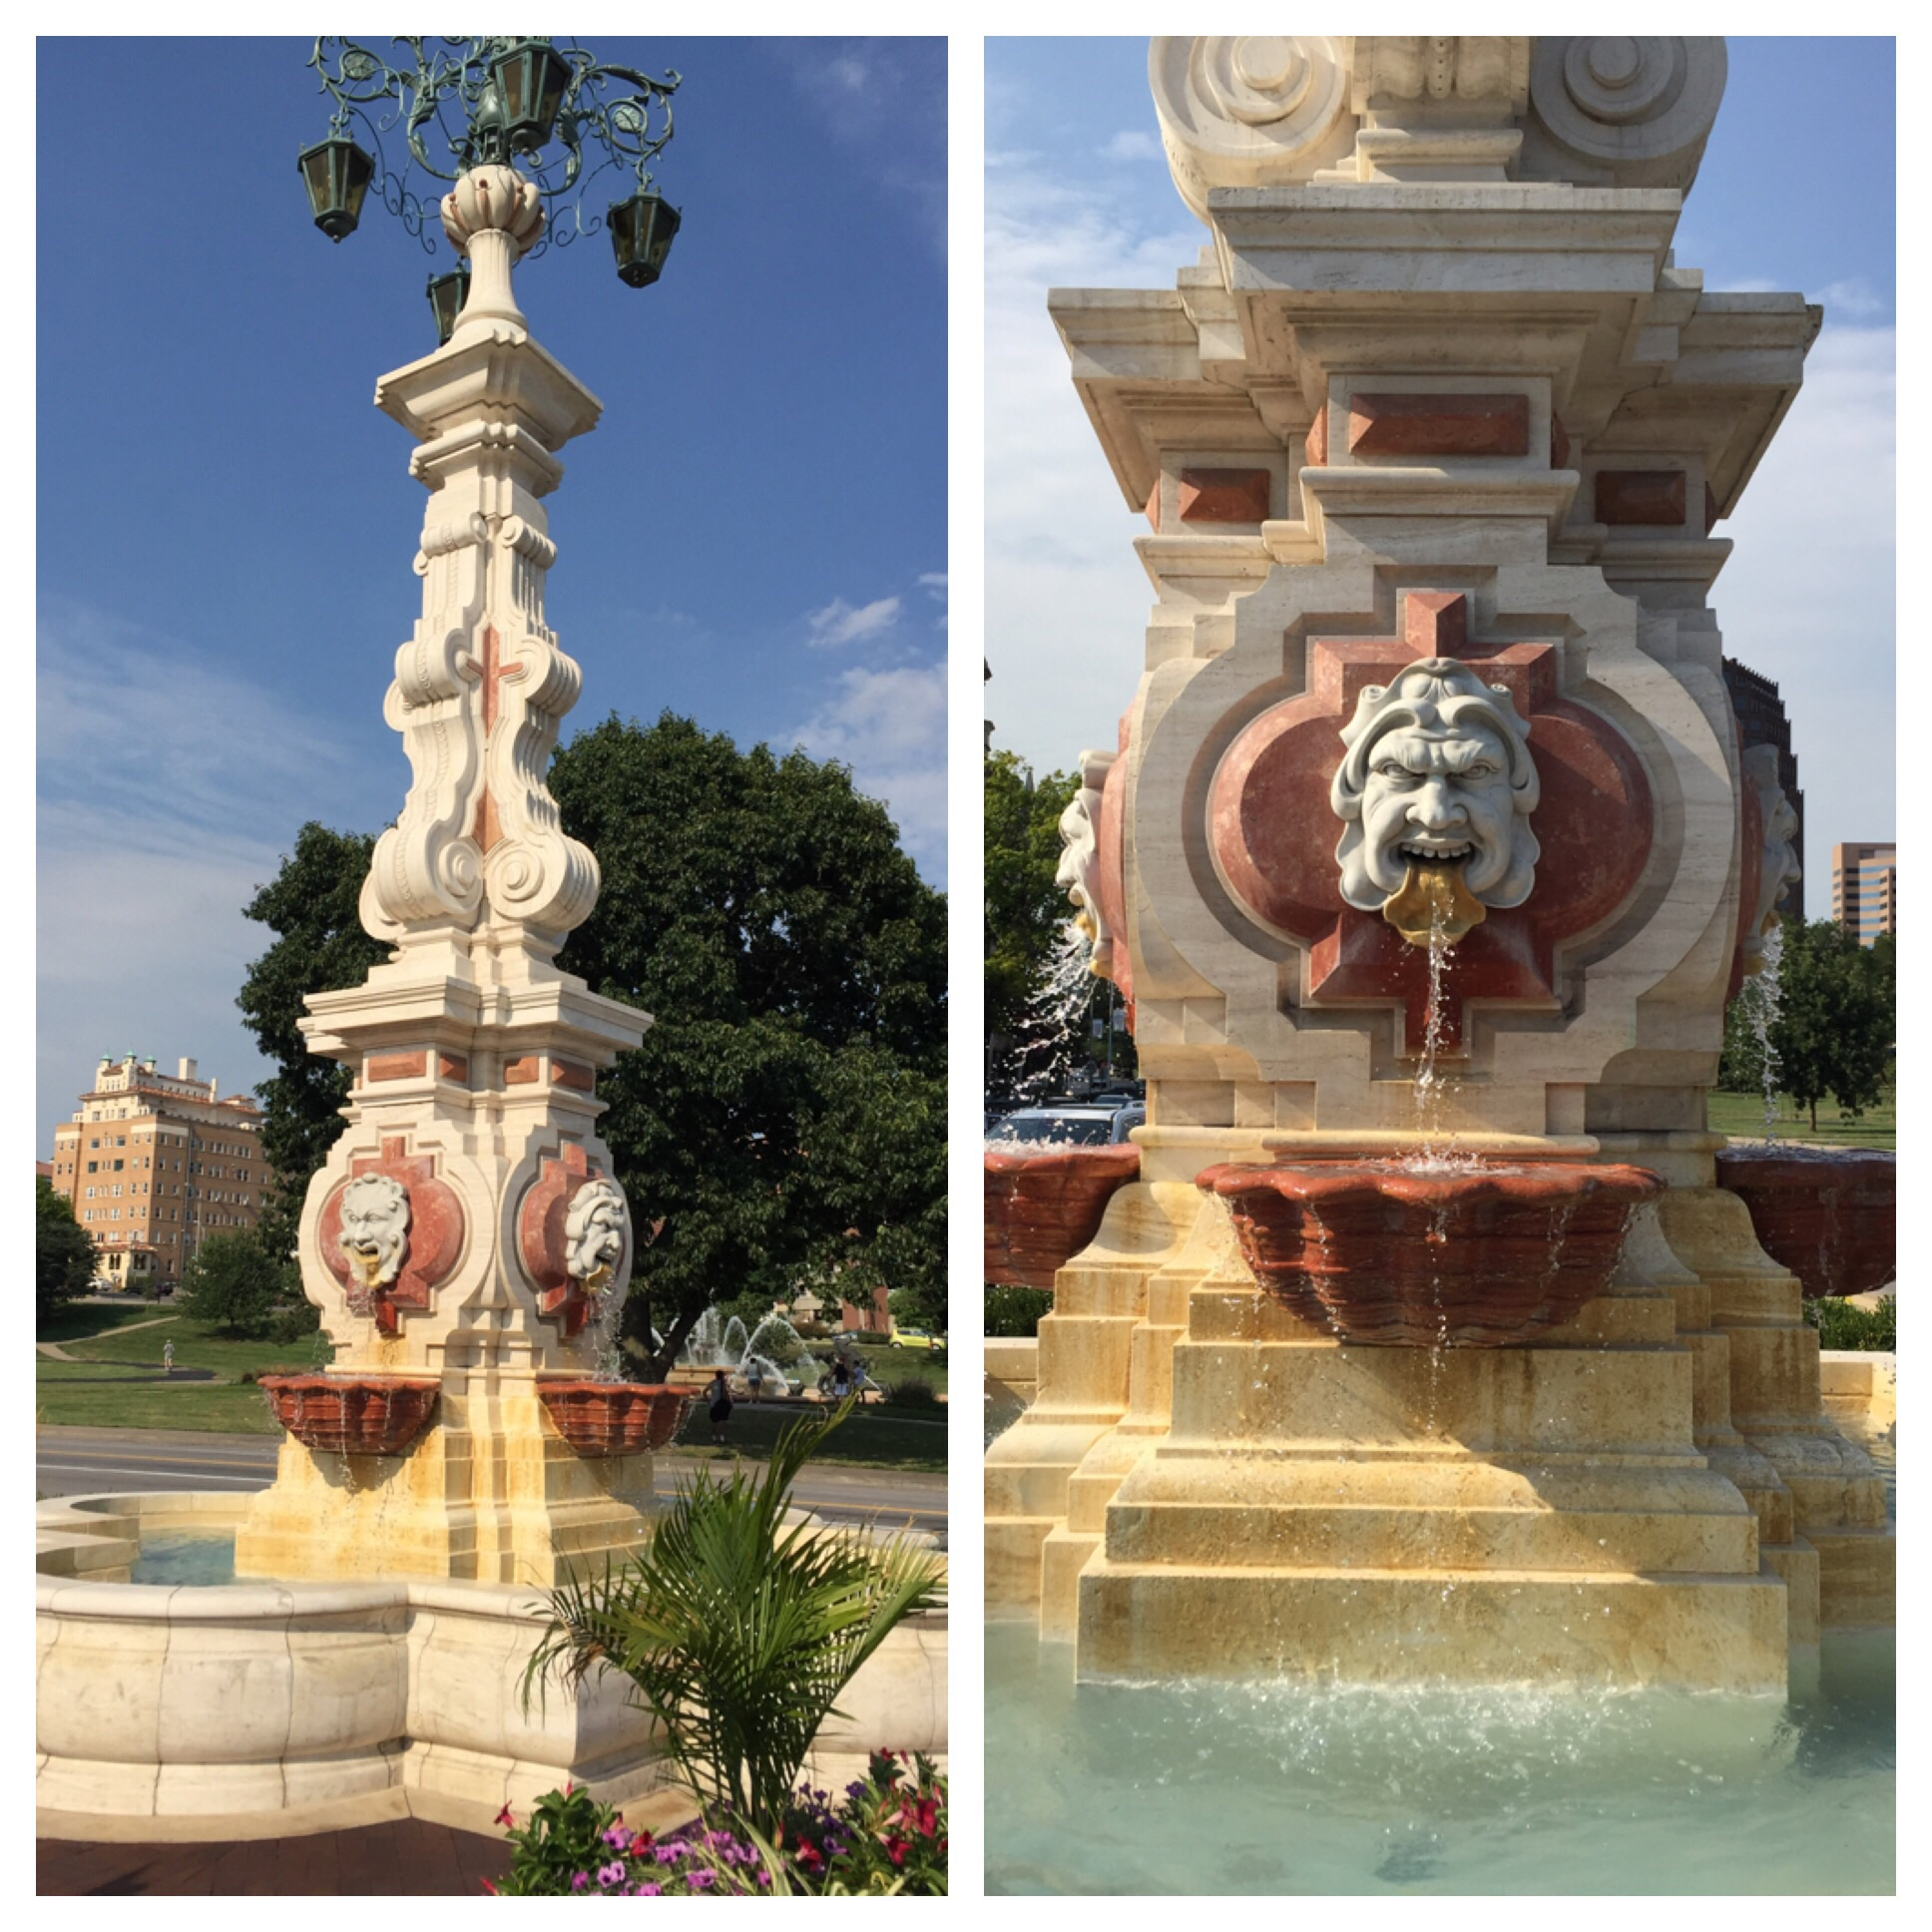 Seville Light Fountain - an exact replica of the Plaza de Los Reyes fountain in Seville, Spain. I love the faces!!